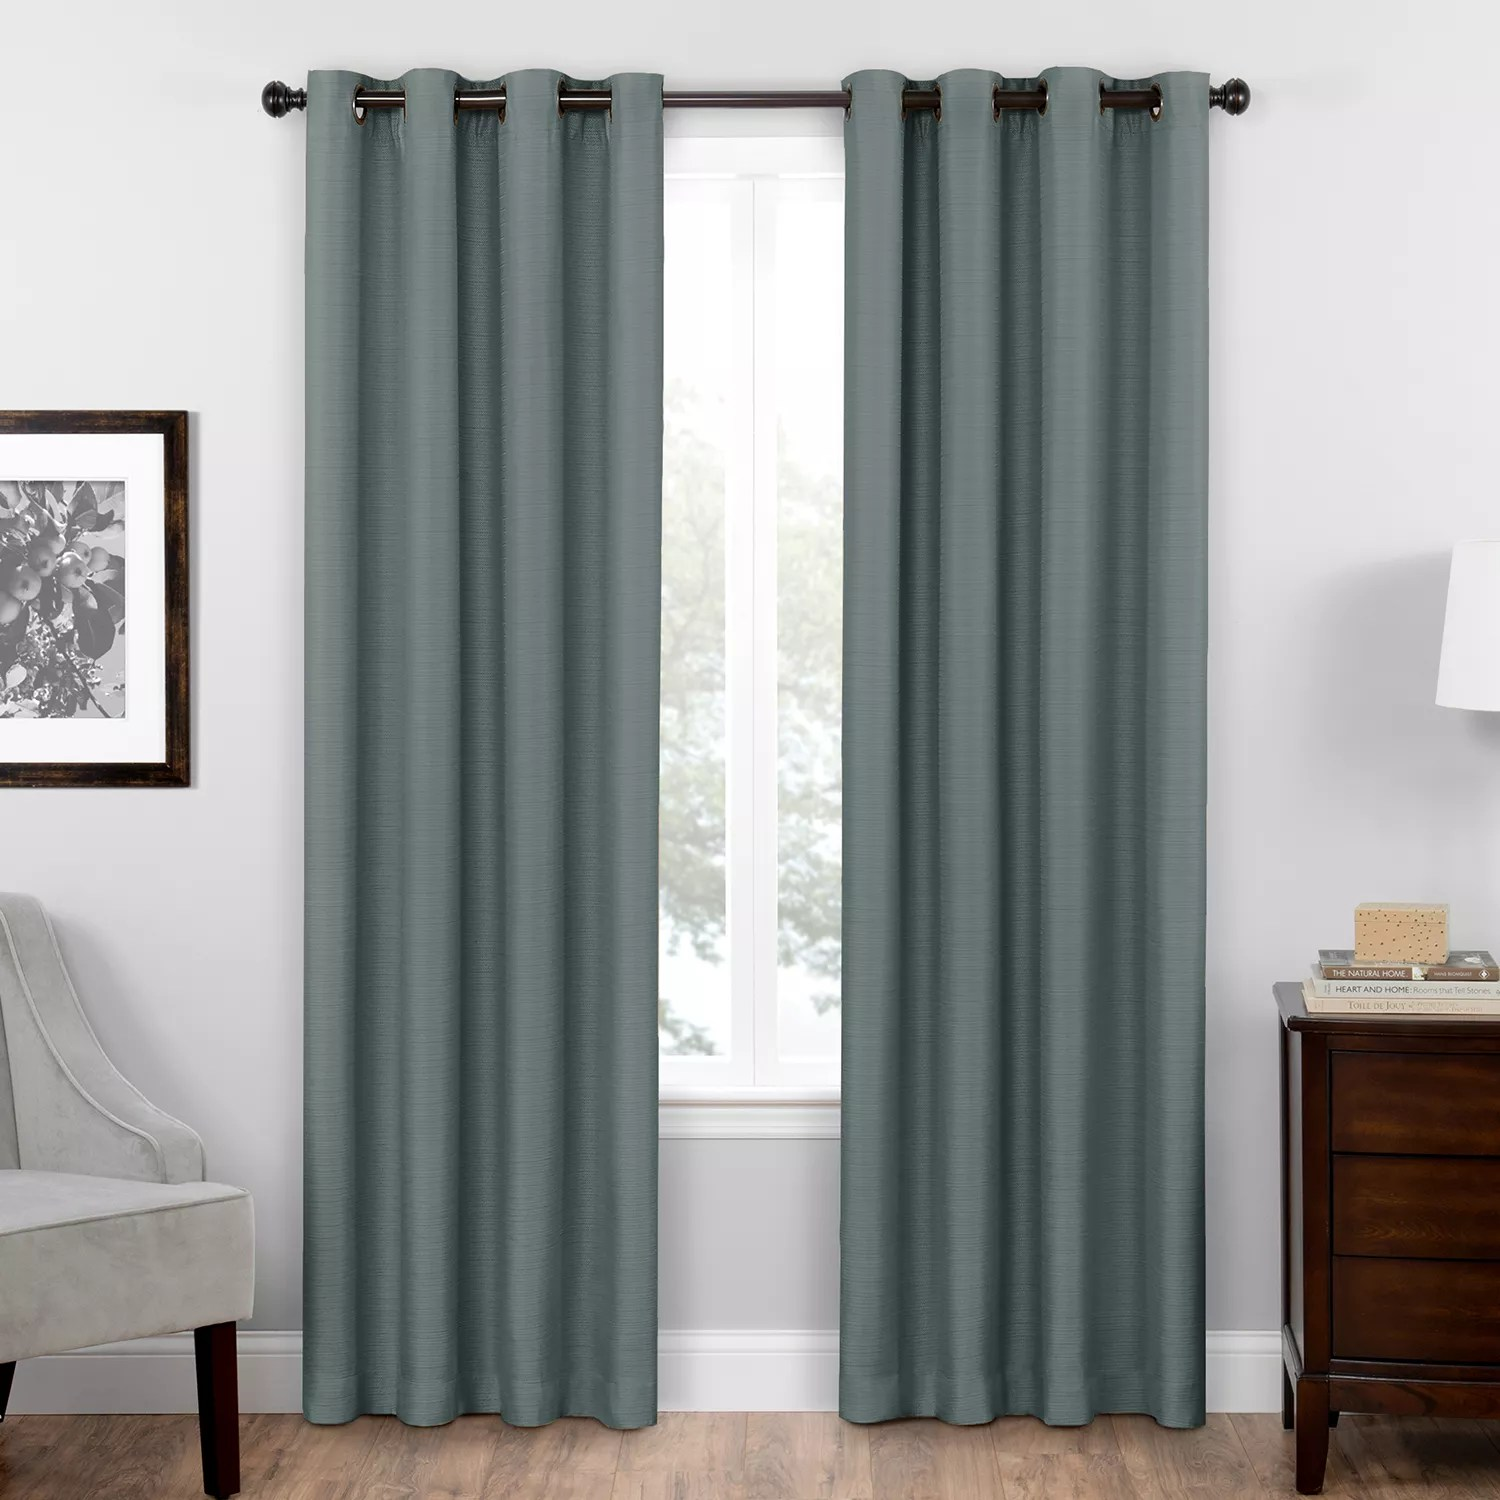 kitchen curtains kohls how to build a cabinet blue drapes window treatments kohl s eclipse thermaweave blackout 1 panel bryson curtain